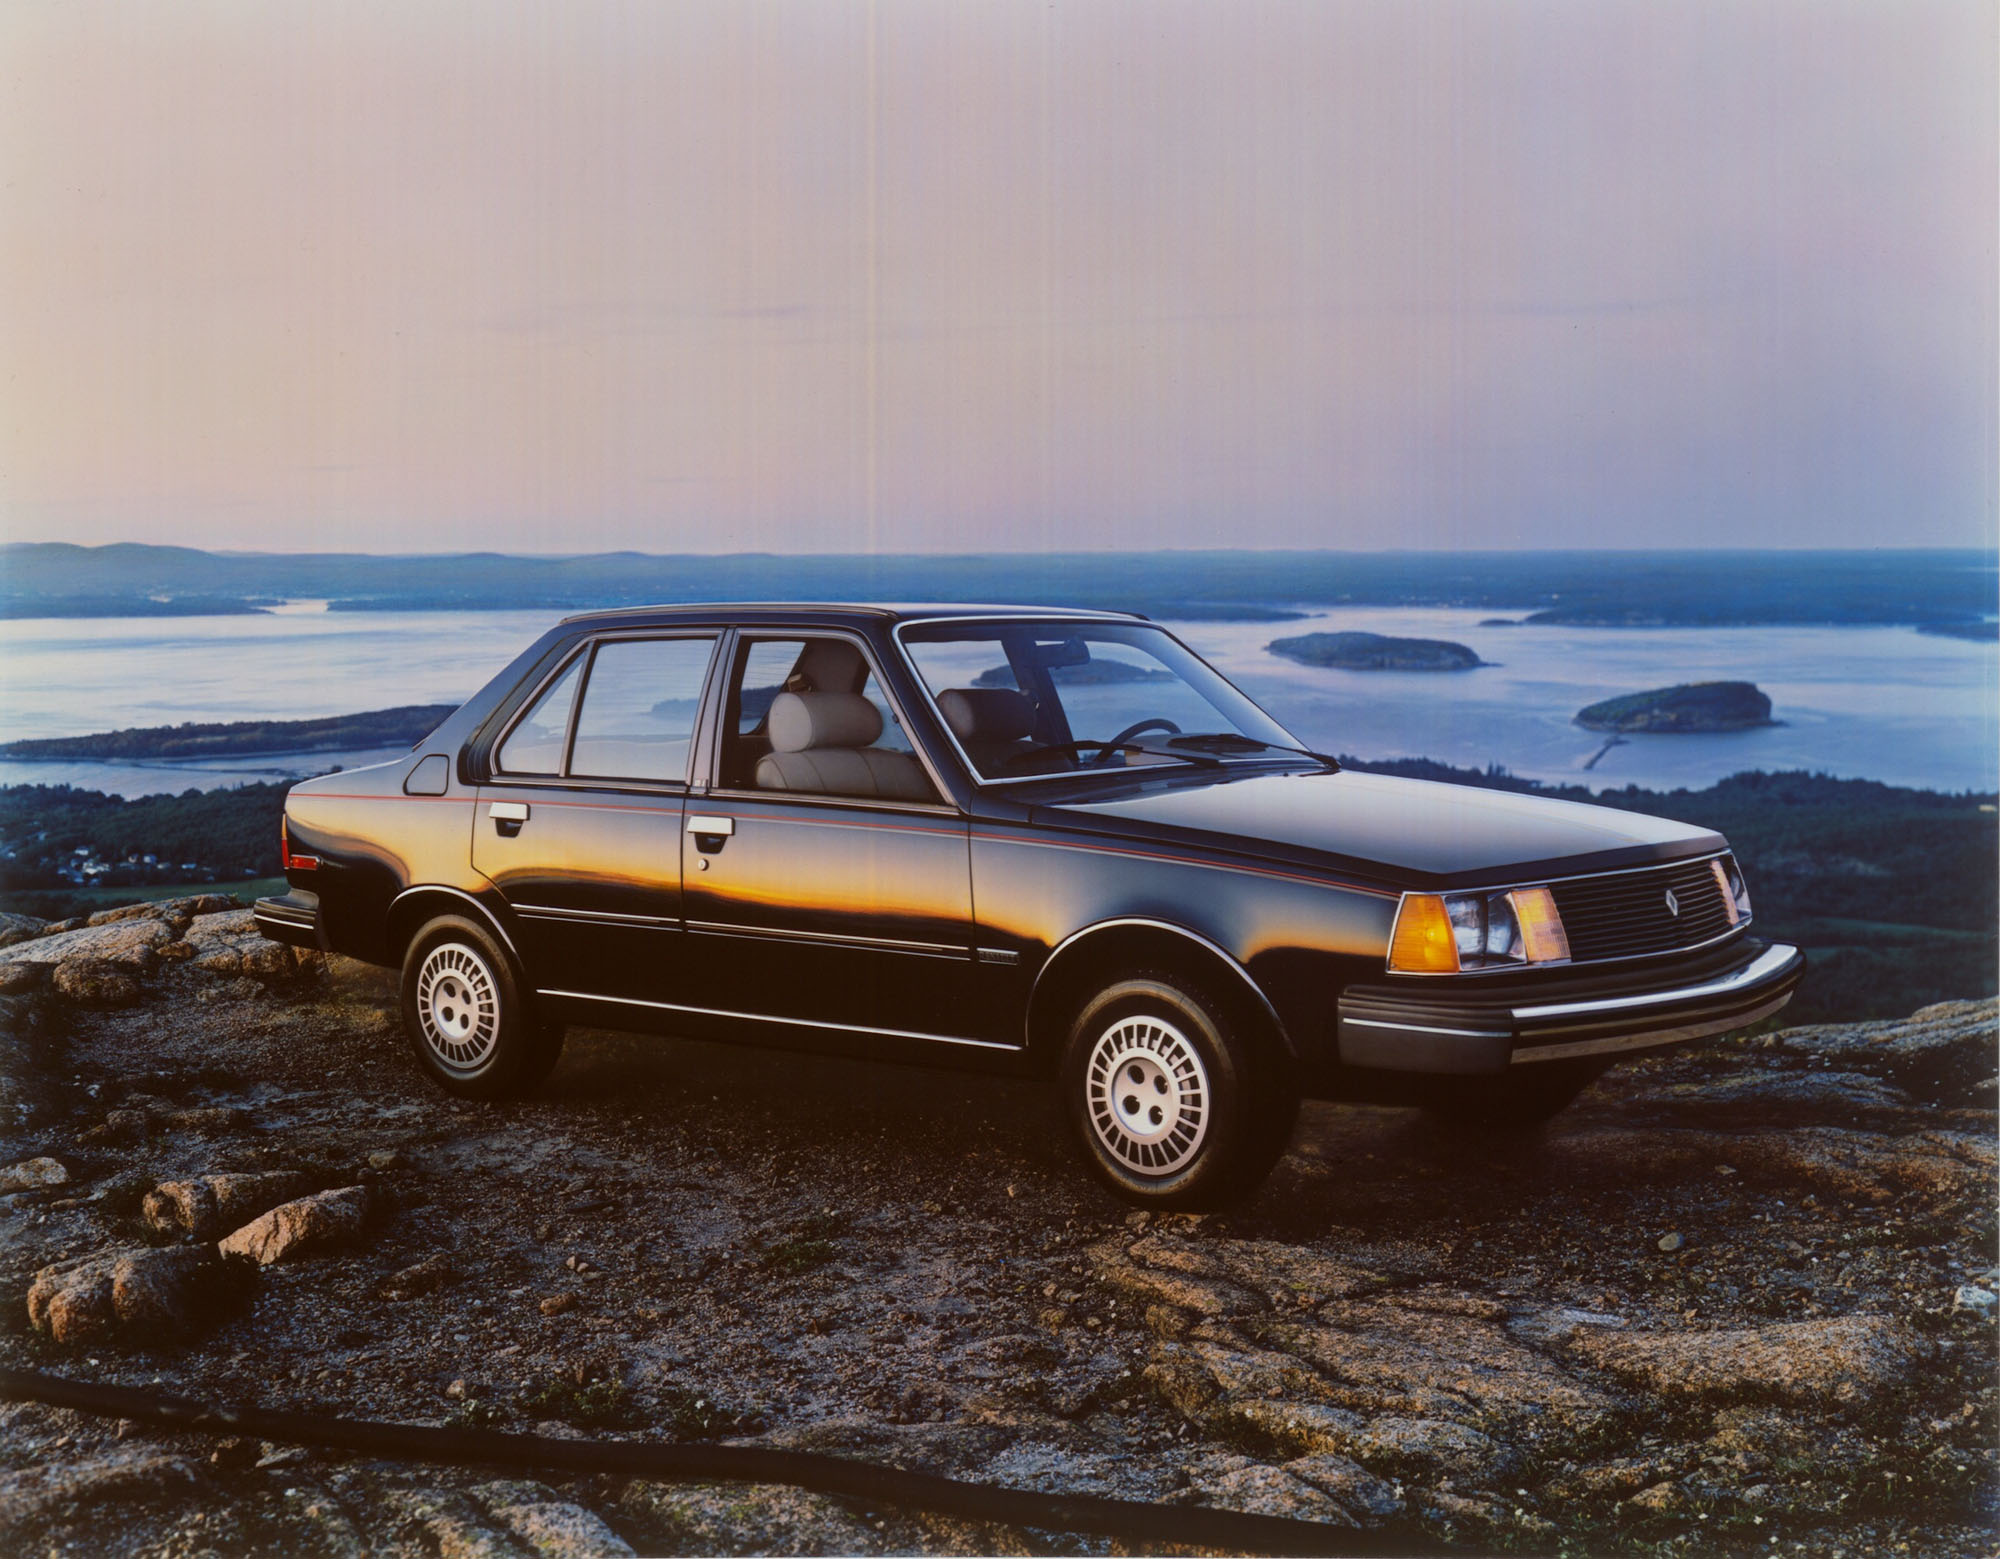 A Look At The U S Spec Renault 18i And 18i Sportswagon Ran When Parked